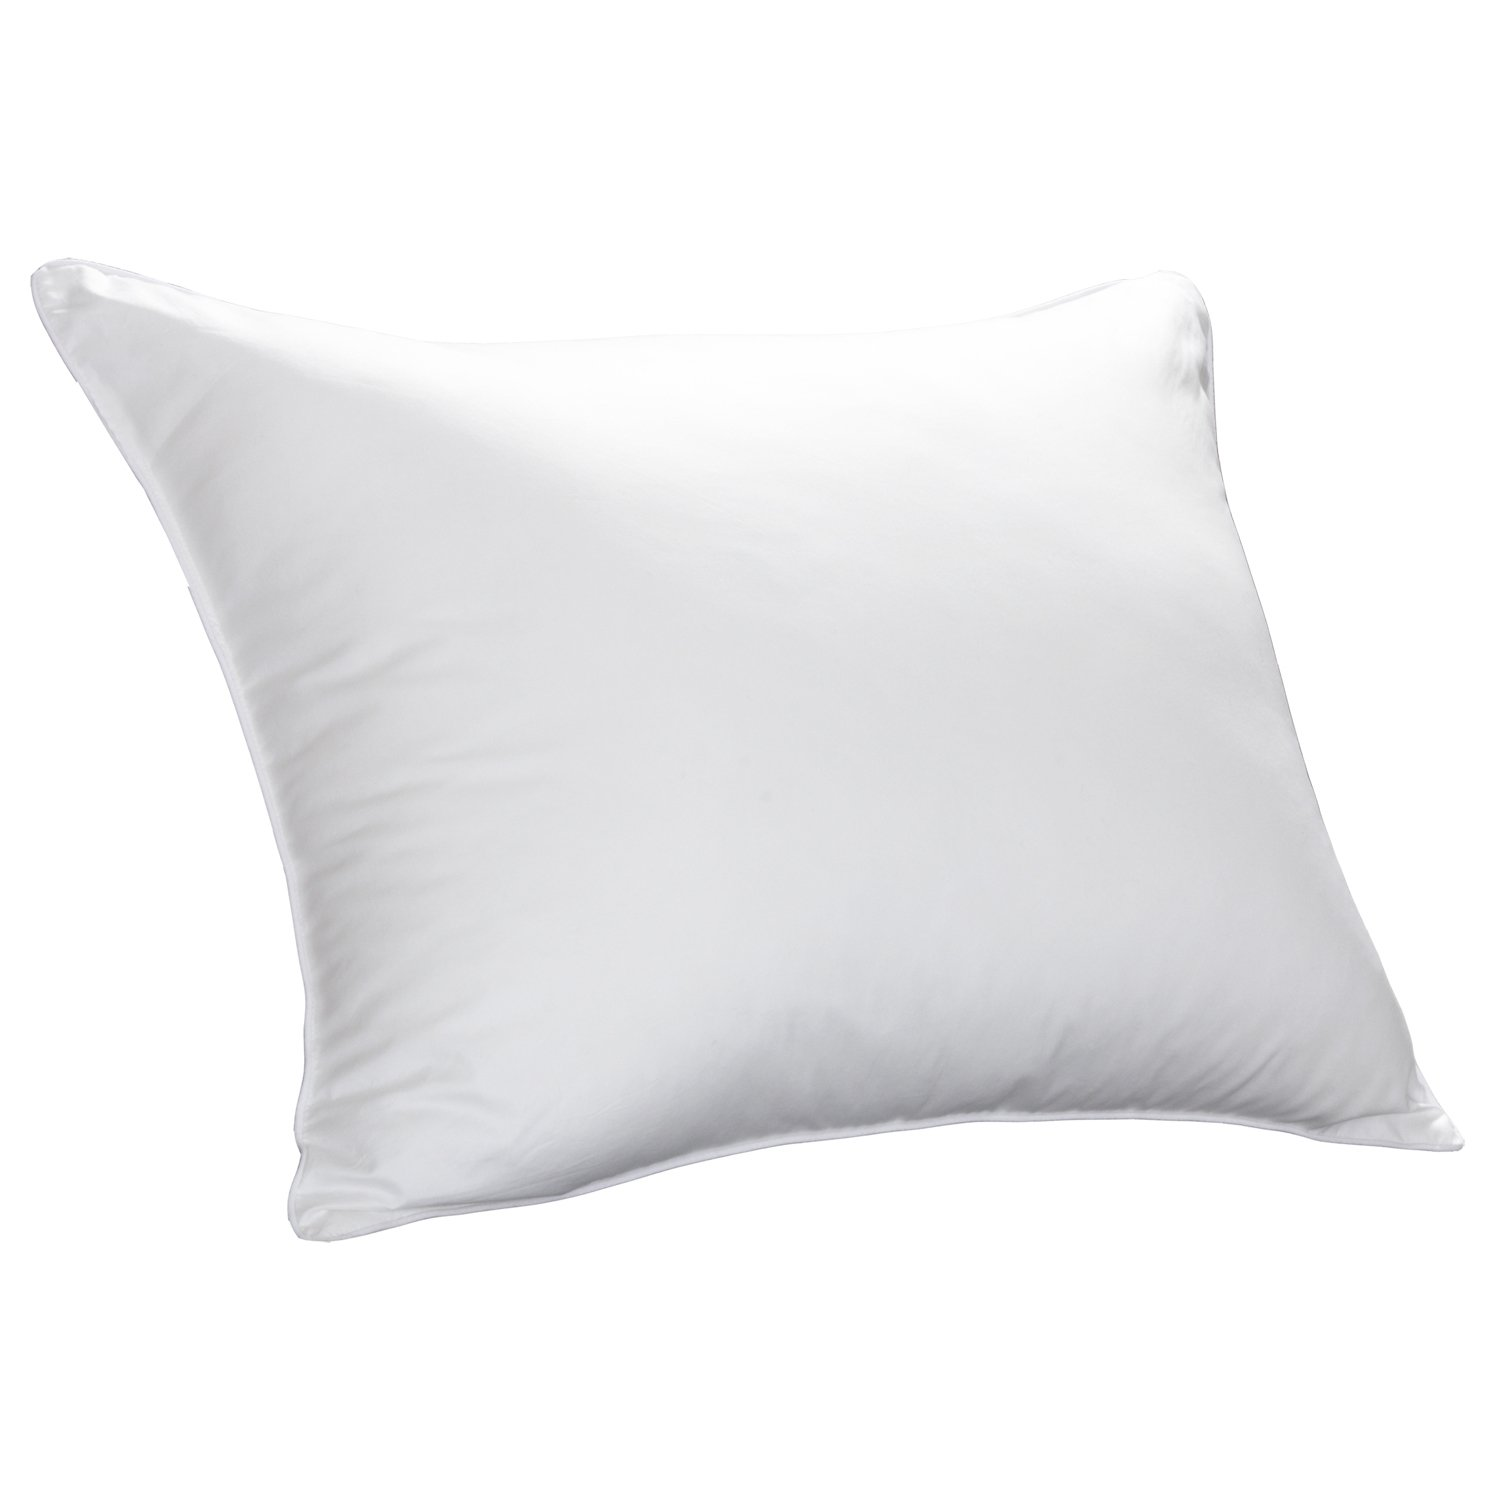 Best goose down pillow for side sleepers secret reviews for Best soft down pillow